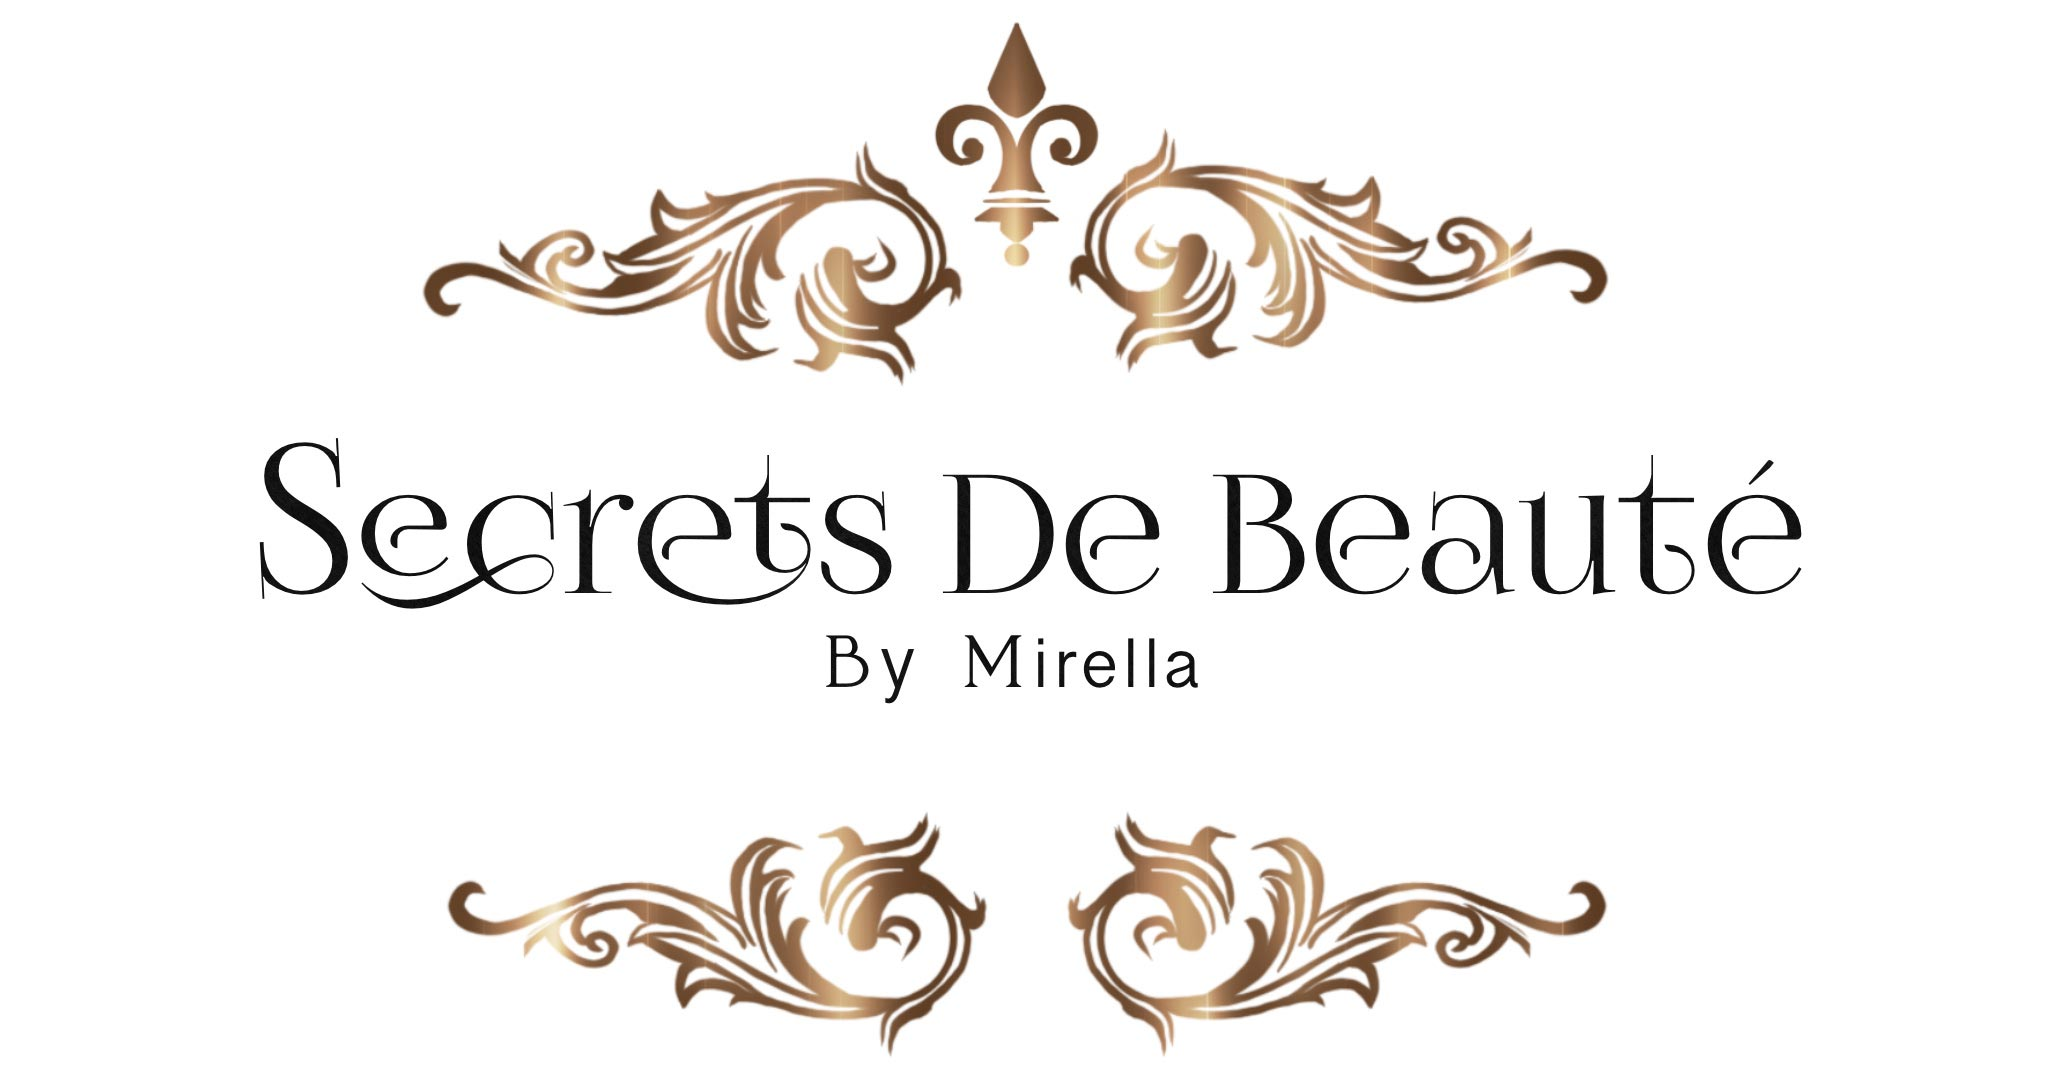 Secrets de Beauté by Mirella